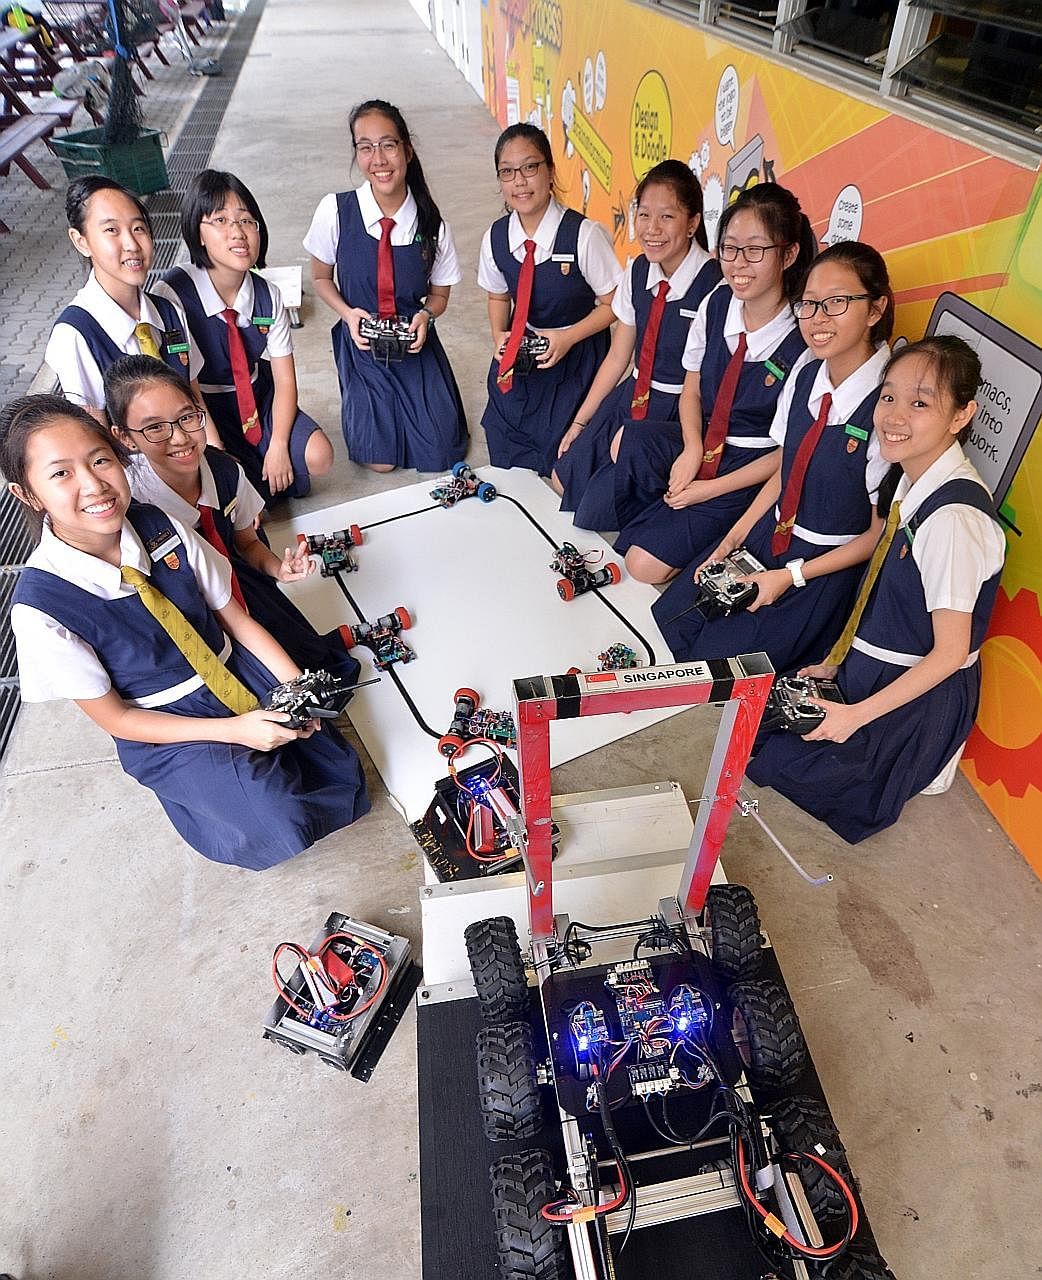 The team from Paya Lebar Methodist Girls' School (Secondary) that represented Singapore in the World Robot Games International competition in Indonesia comprised (from left) Charissa Wee Sze Hui, 13; Angel Yip Enqi, 13; Joan Lim Shuxian, 15; Woo Jie